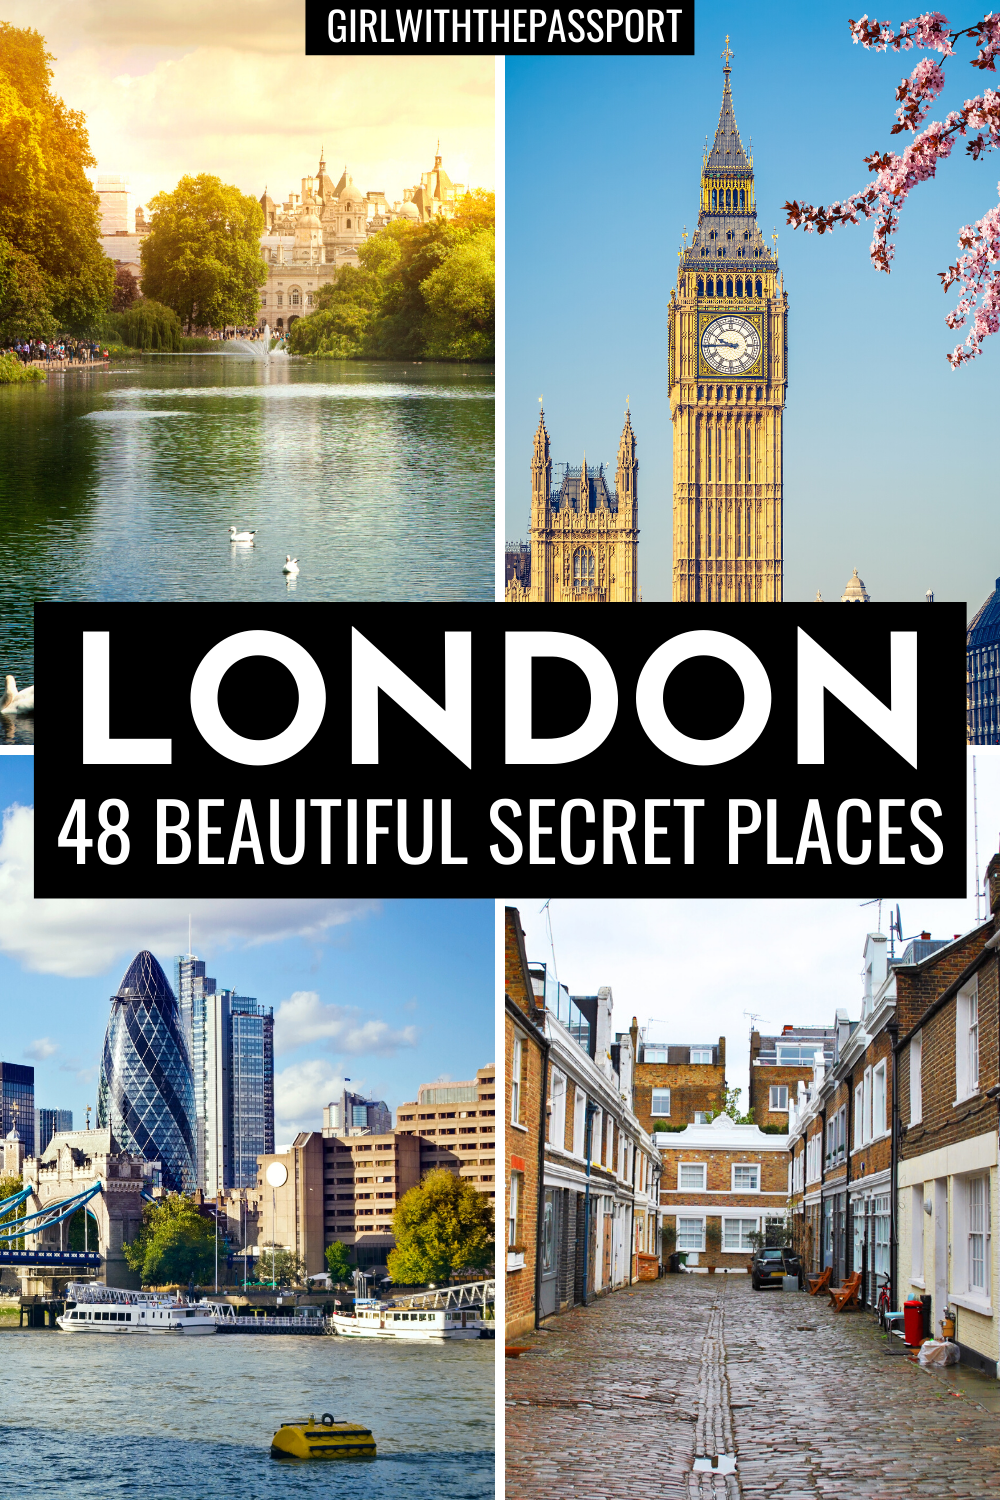 Want to visit London like a local but have no idea where to go or what to see in London? Then check out this London guide, written by a frequent London Traveler, which will help you get off the beaten path and plan a unique trip to London with 48 unusual things to do in London that everyone will love! Things you can easily add to your London itinerary to help you plan the perfect, London trip. #London #LondonTravel #ExploreLondon #VisitLondon #LondonTrip